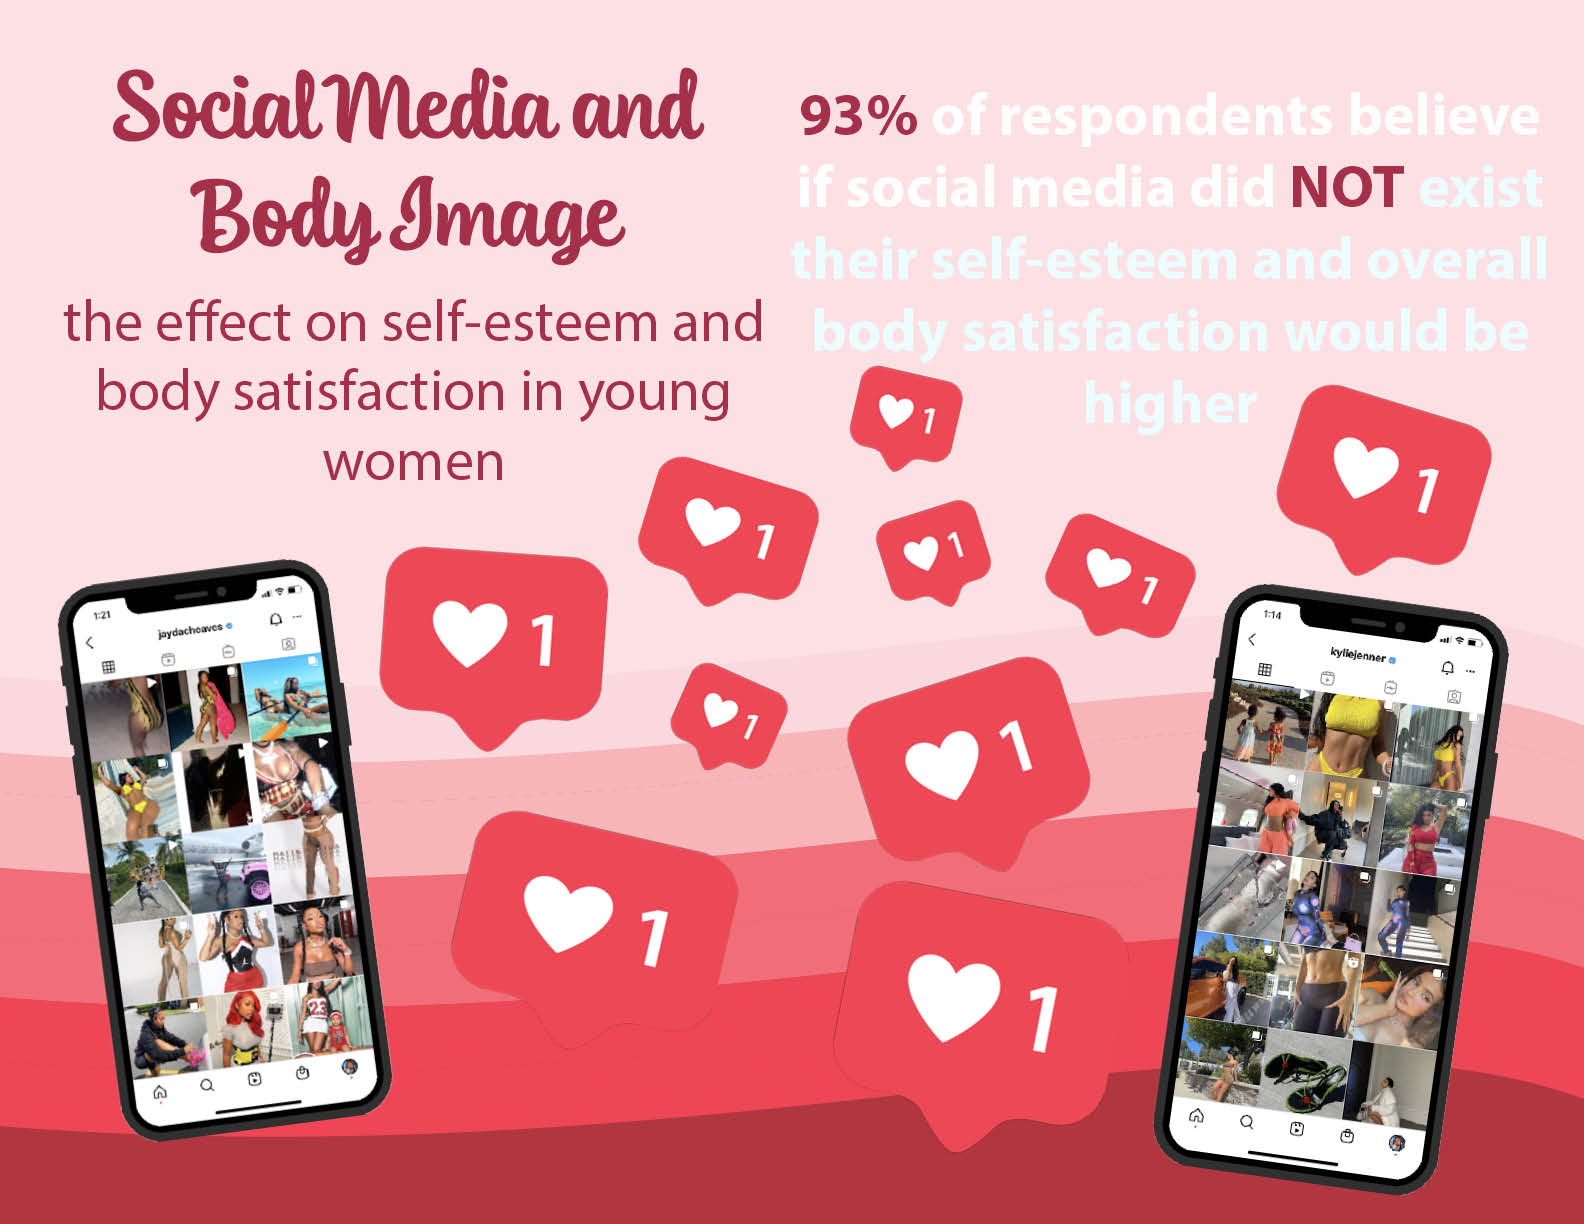 Social Media and the Effect on Self-Esteem and Body Satisfaction